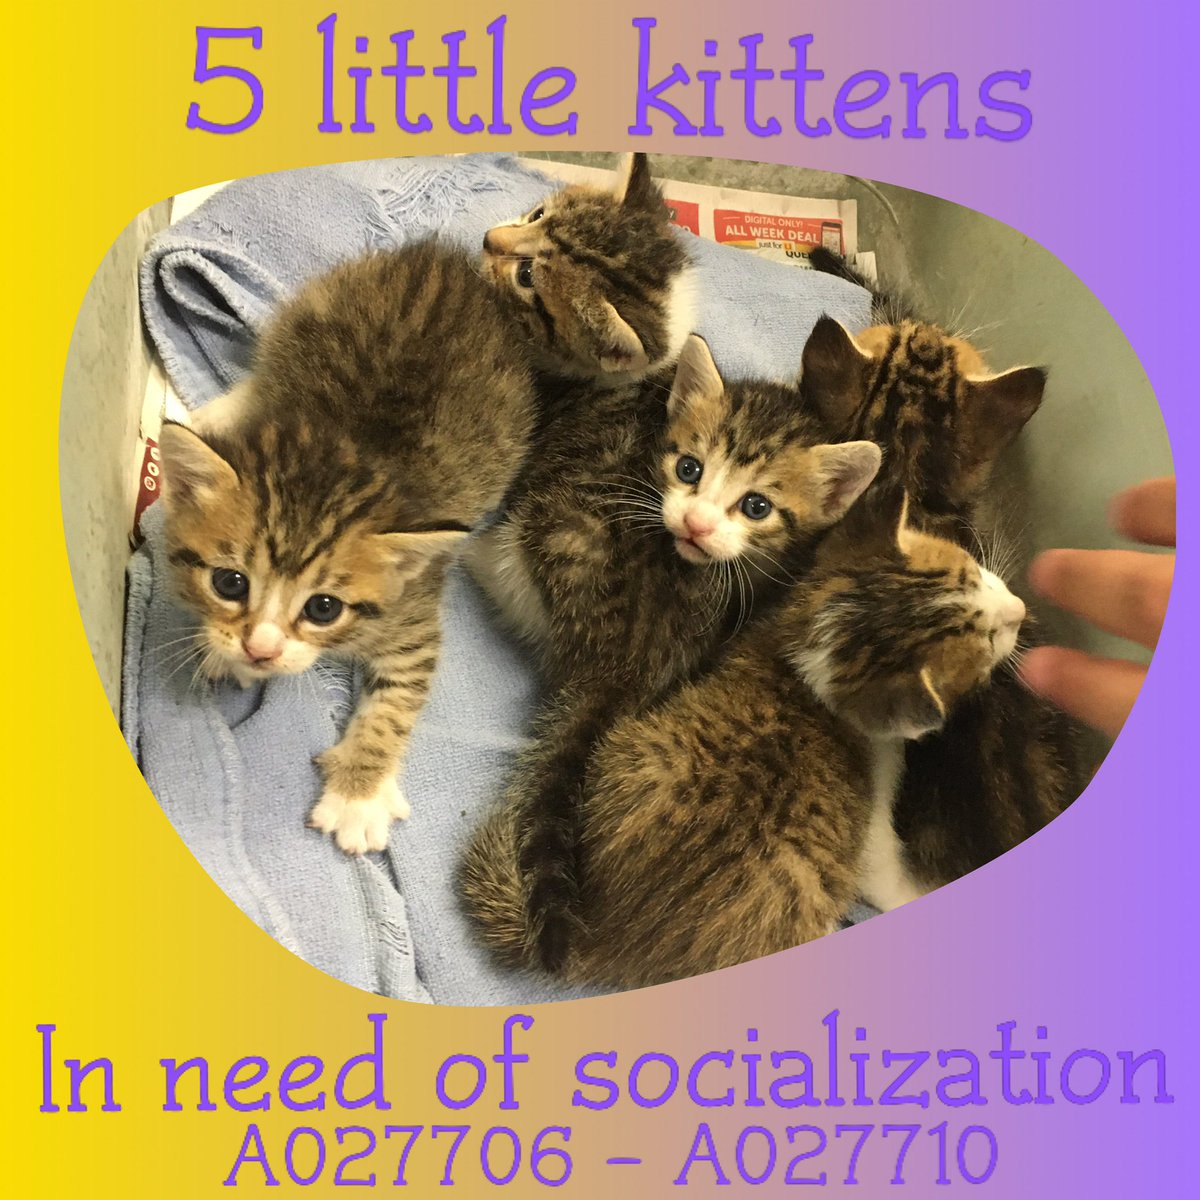 We have 5 little #kitties in need of socialization!   They're about 6 weeks old, and are looking for a #foster for a few weeks to help them grow big and strong, and to #help them get used to being around people. https://t.co/JZxpWLhb48